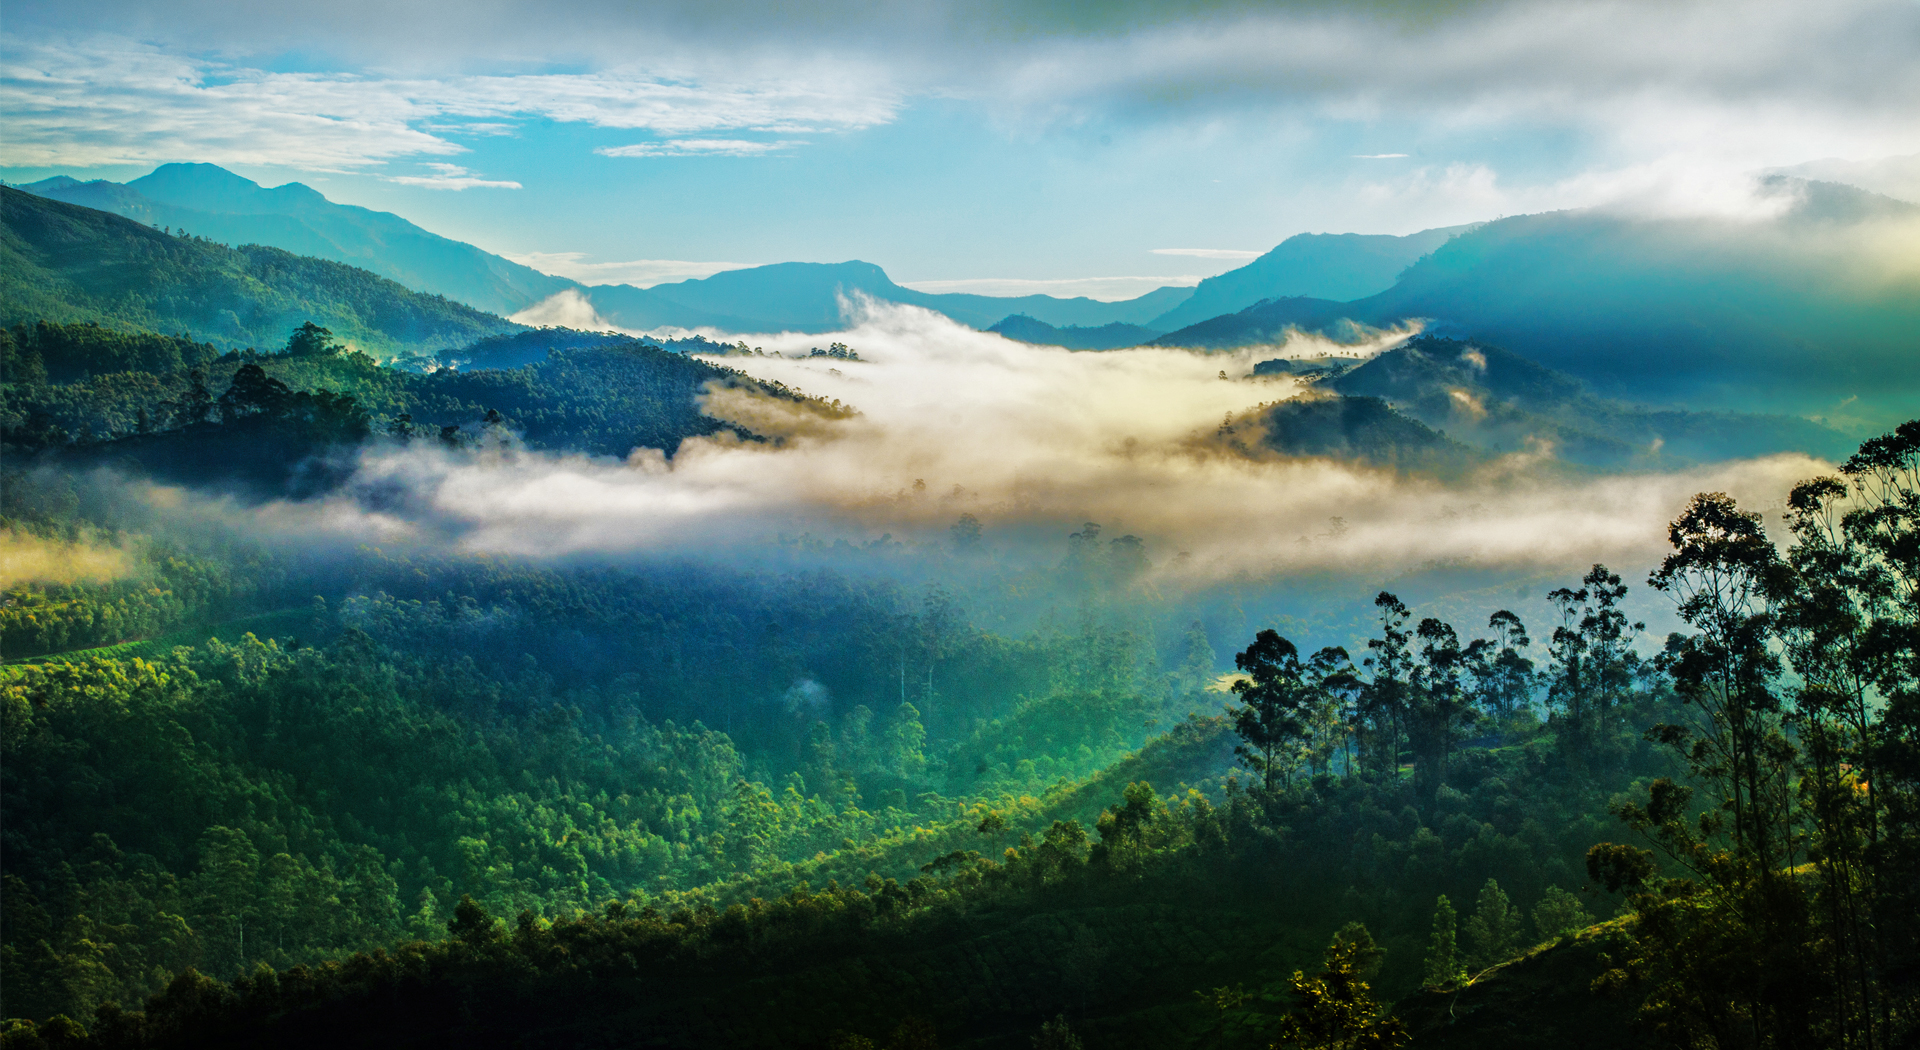 mountain landscapes, LANDSCAPE IN MUNNAR, Kerala Tourism, Landscapes of Munnar, munnar landscape,